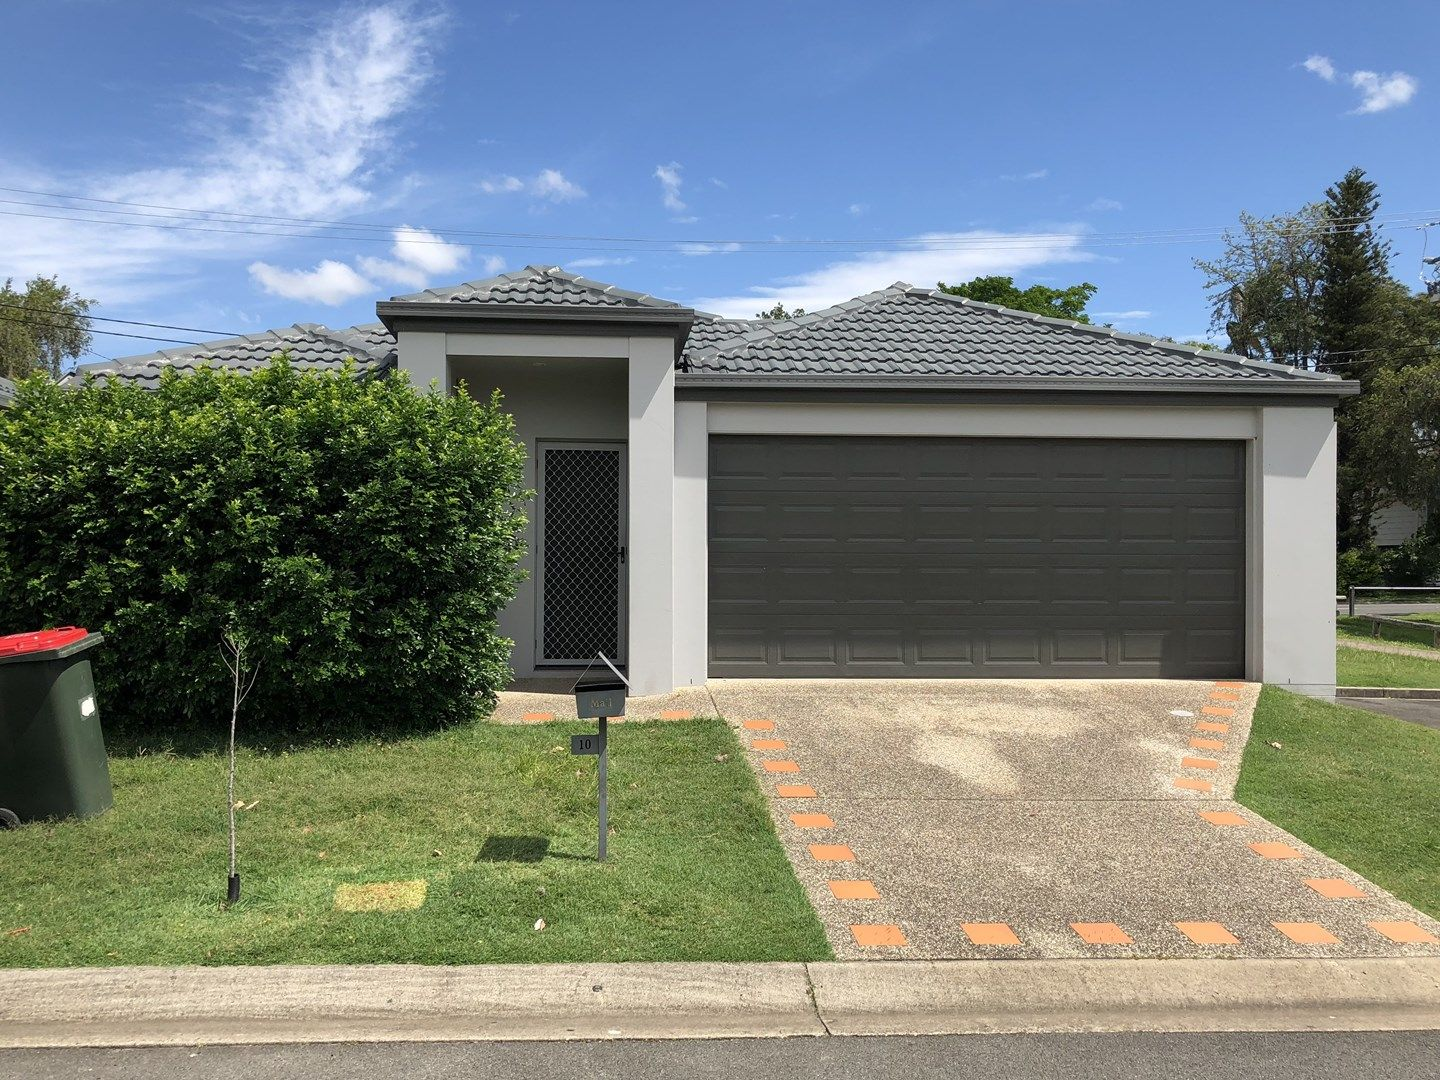 10/35 Ashridge Road, Darra QLD 4076, Image 0